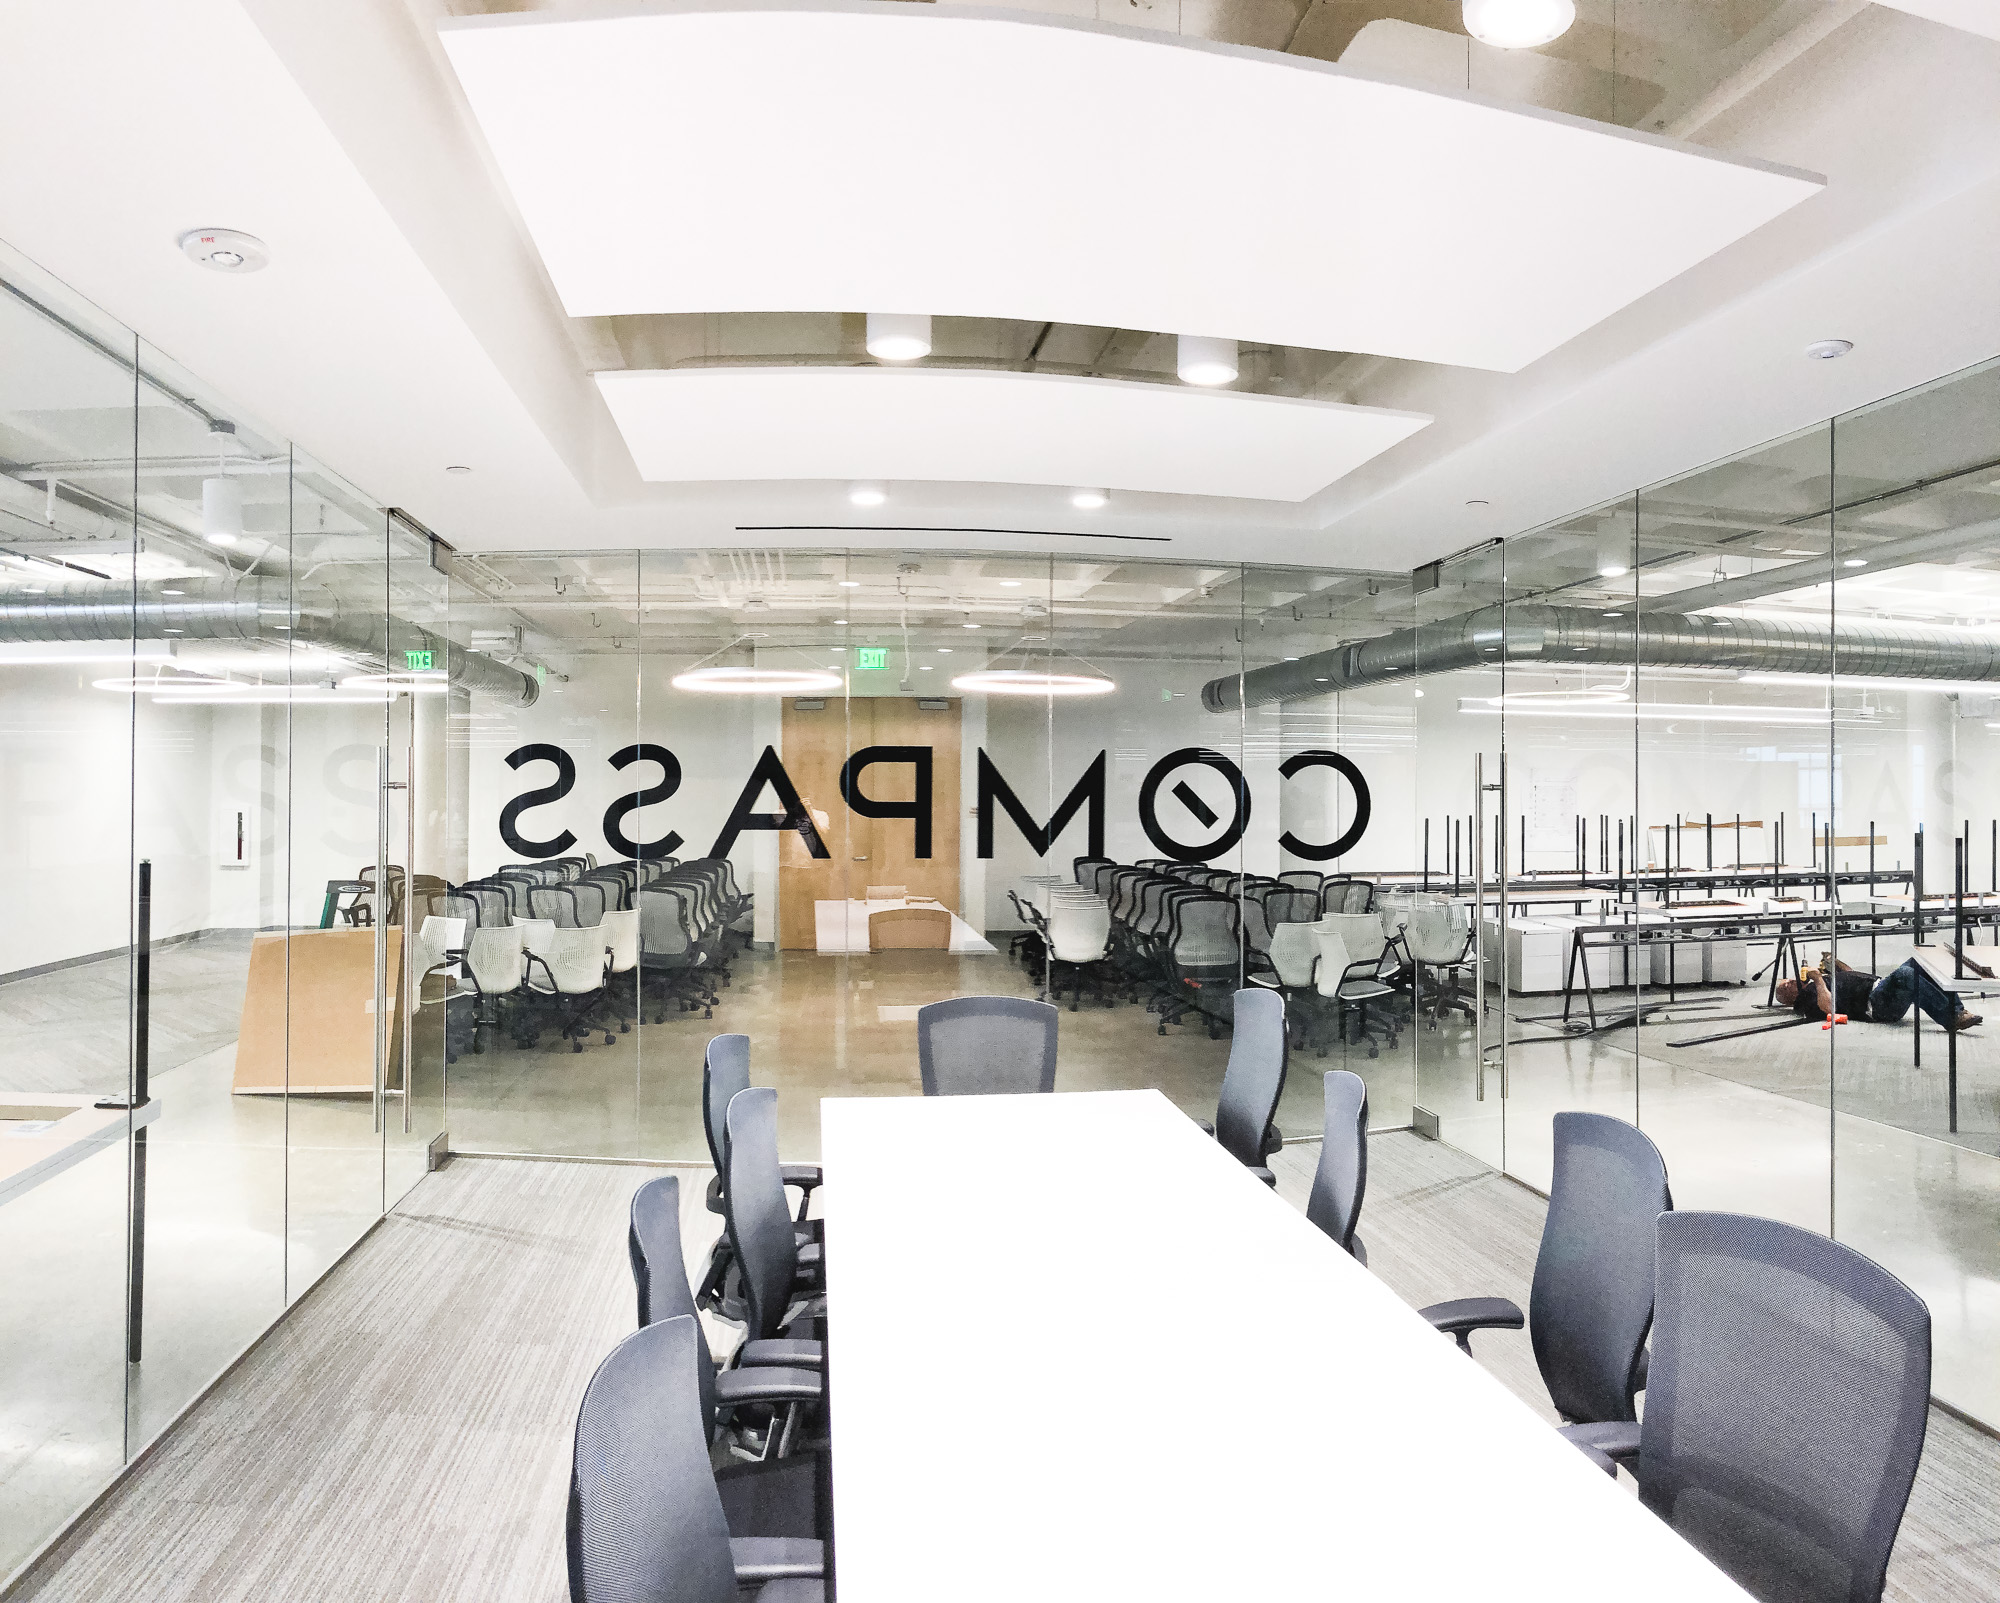 Glass vinyl sign / privacy screen at the San Francisco office of Compass, a modern real estate platform.